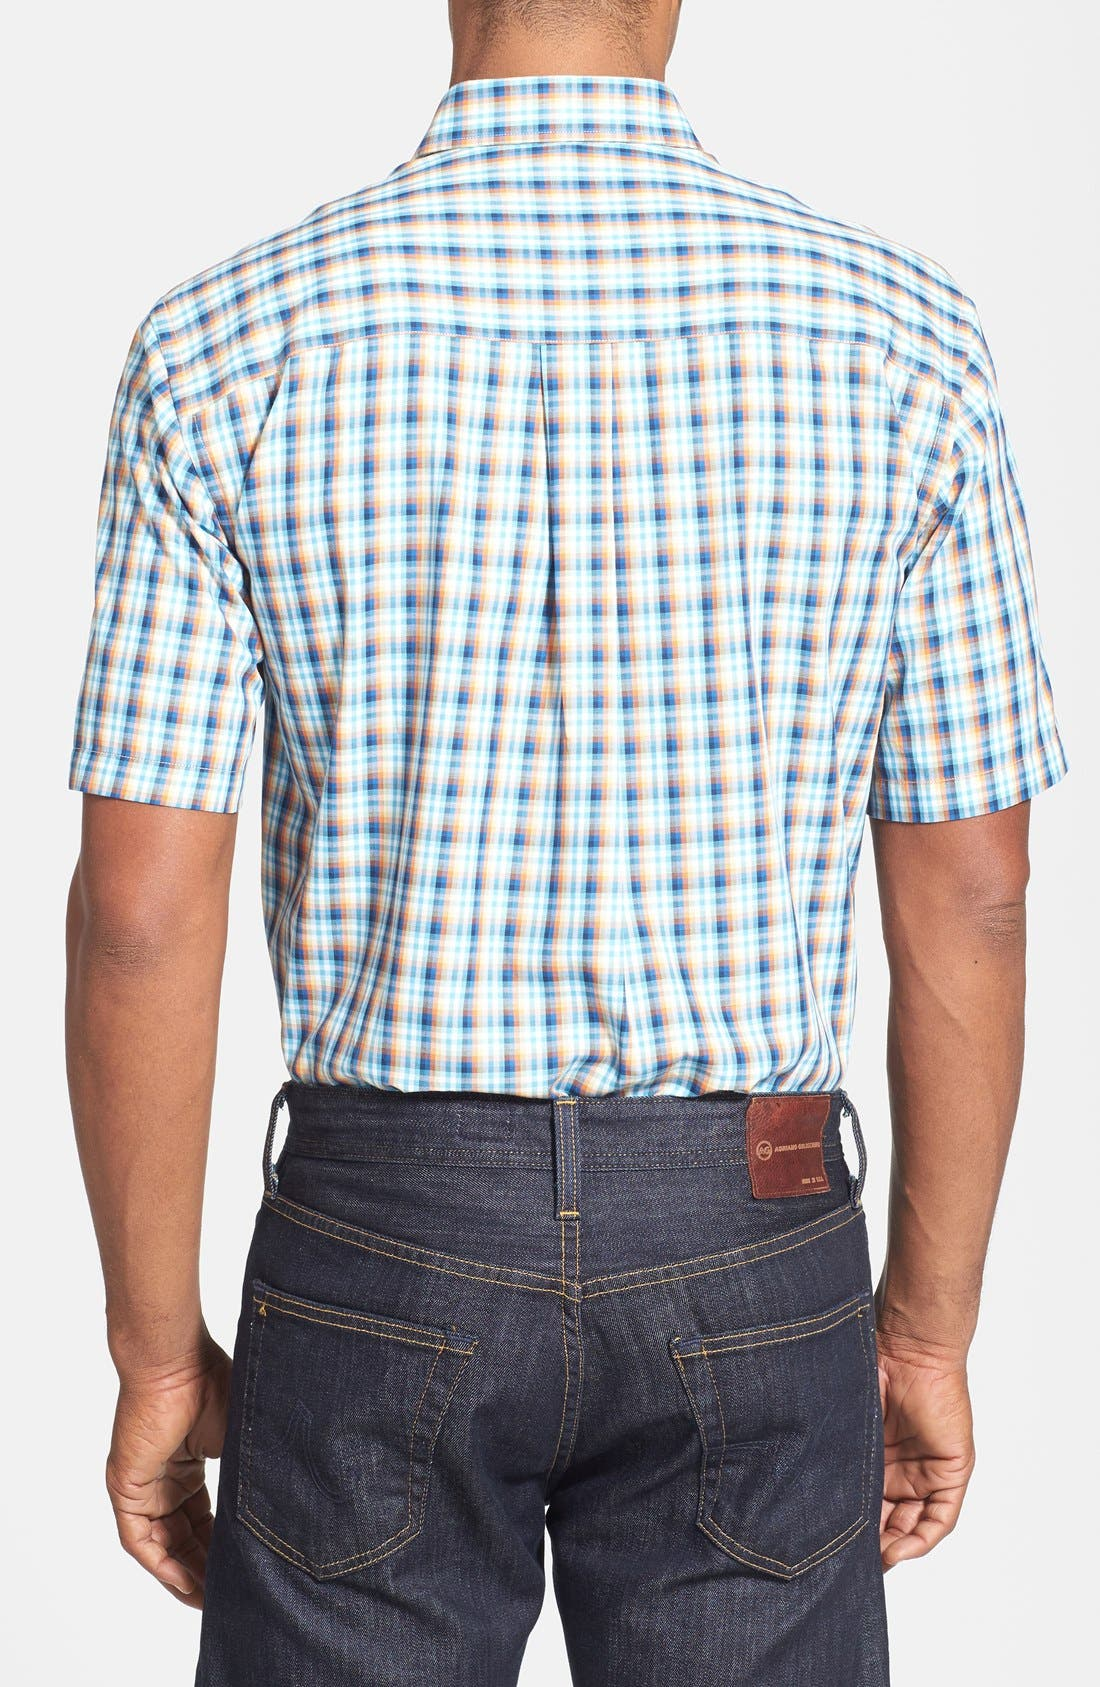 Alternate Image 2  - Cutter & Buck 'Morton Road' Classic Fit Short Sleeve Plaid Sport Shirt (Big & Tall)